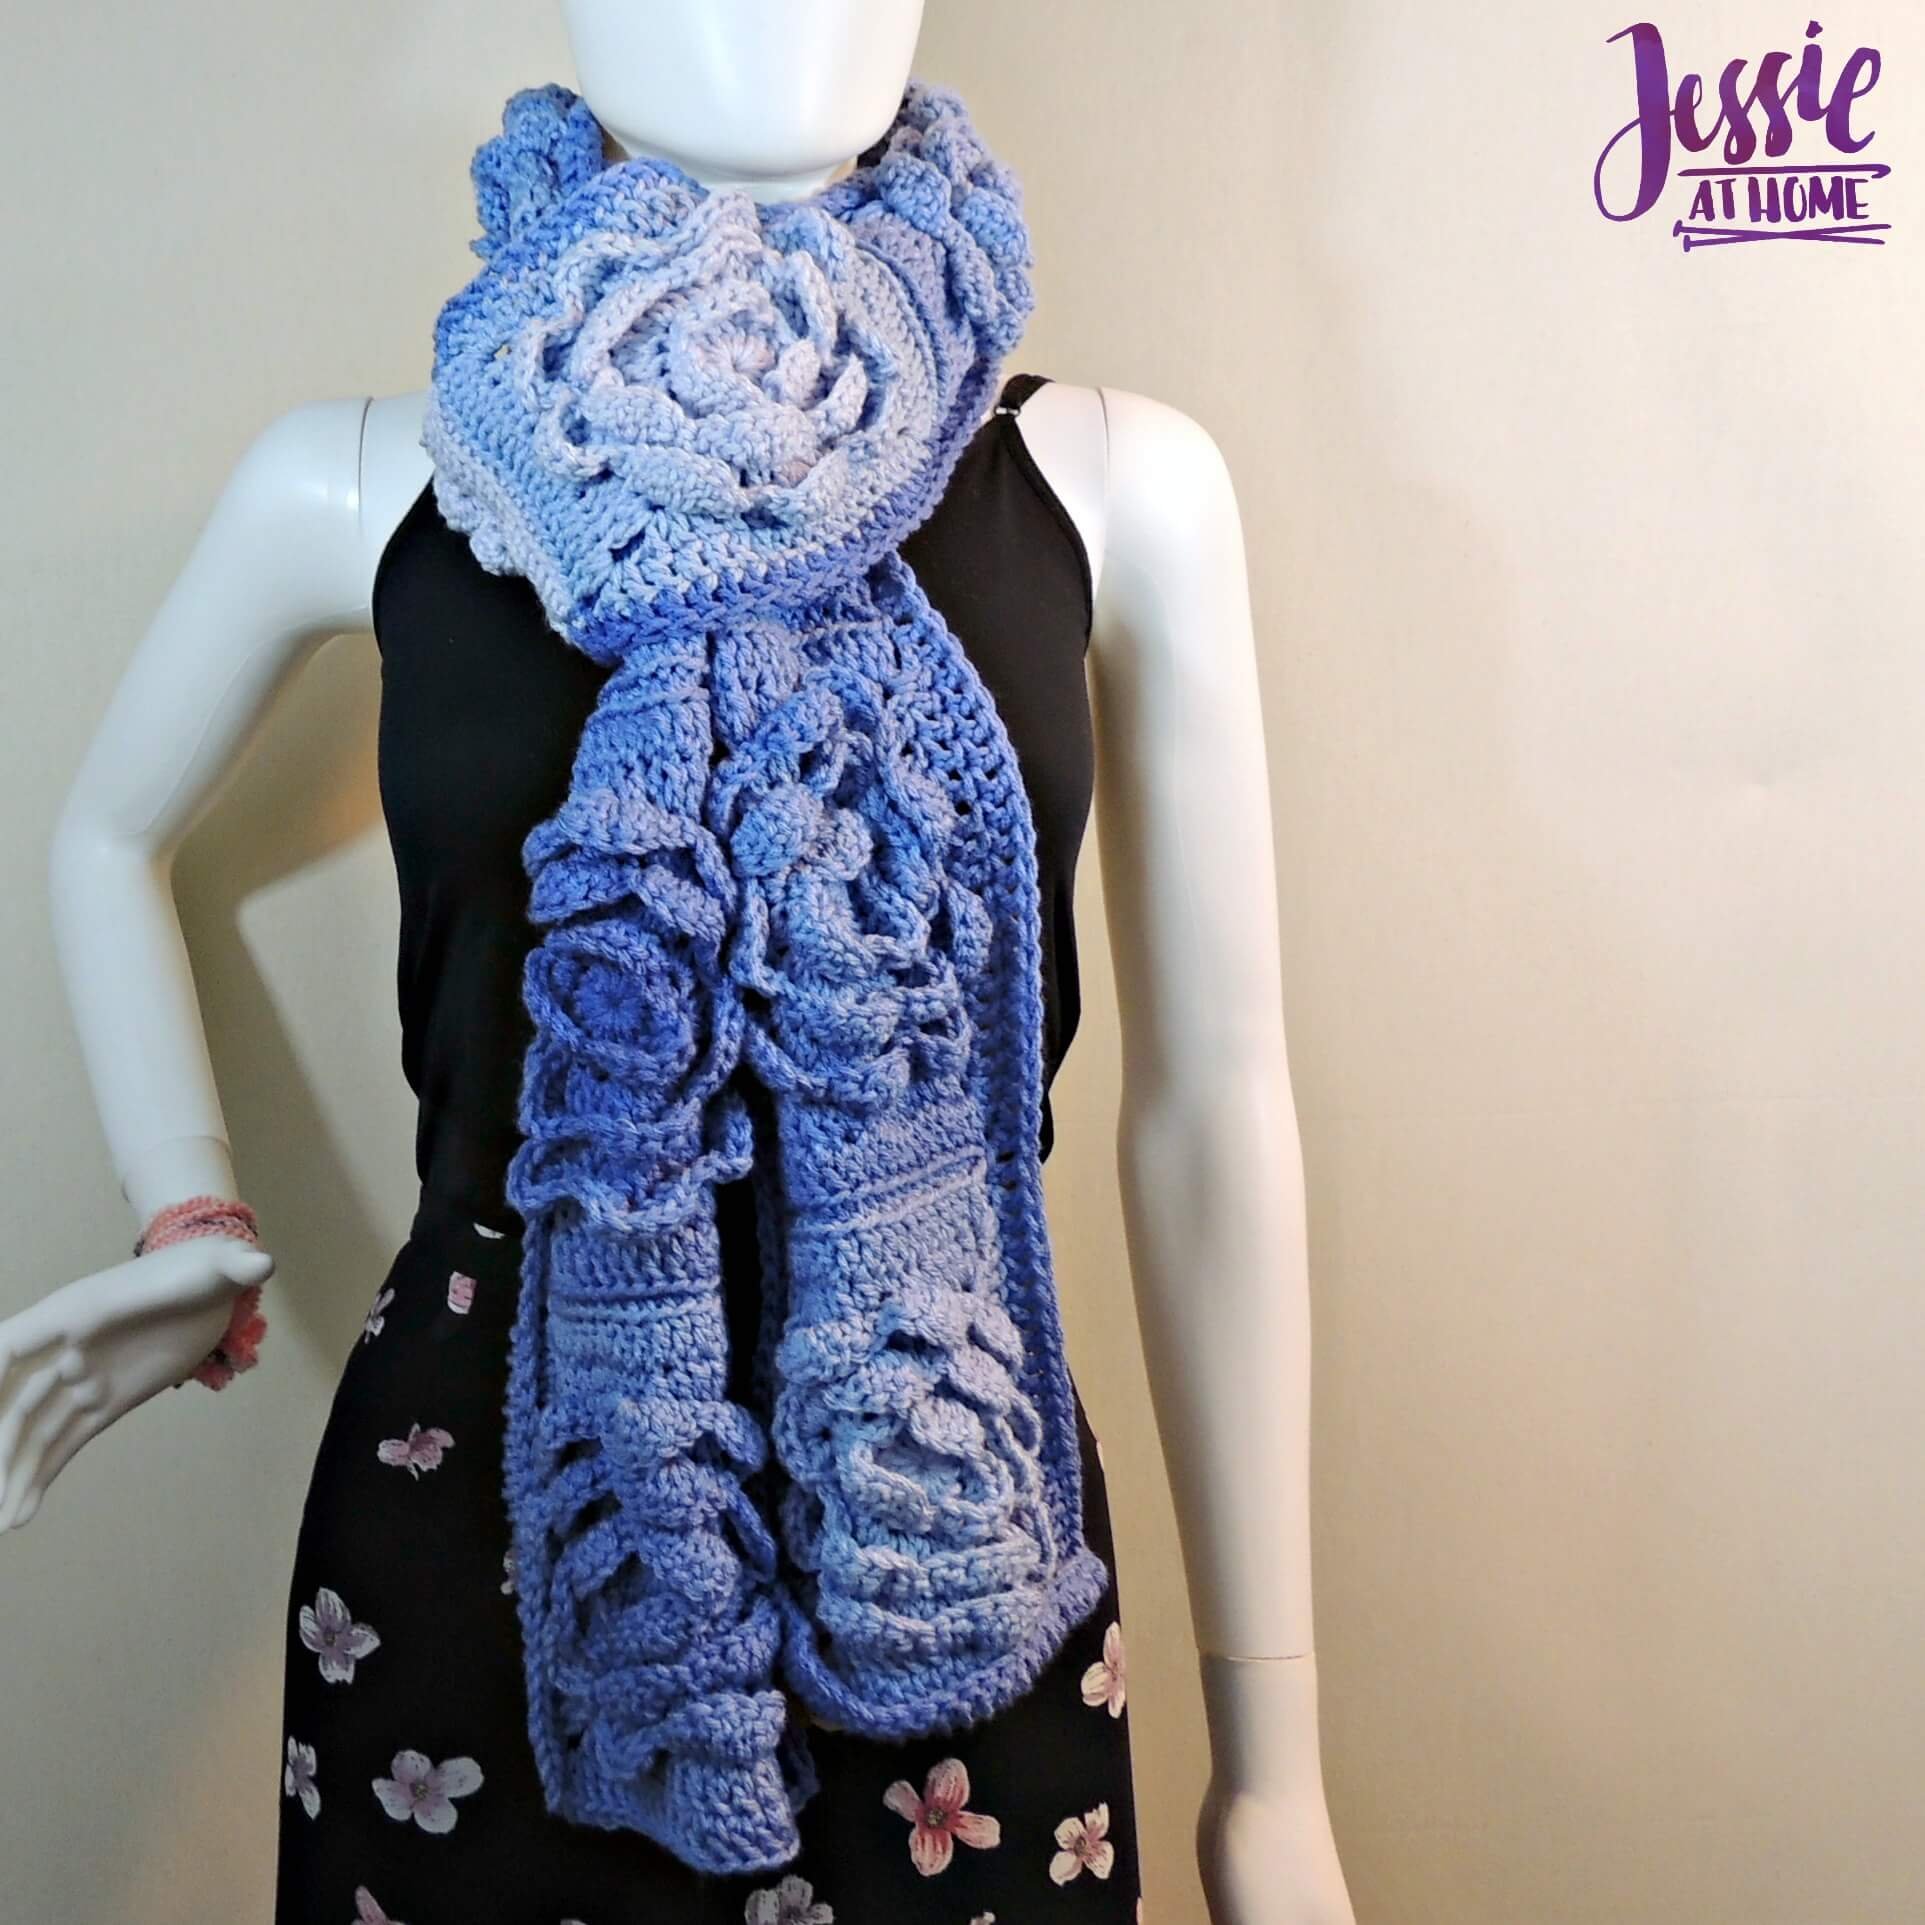 Flower Granny Square Bloom Crochet Scarf free crochet pattern by Jessie At Home - 1